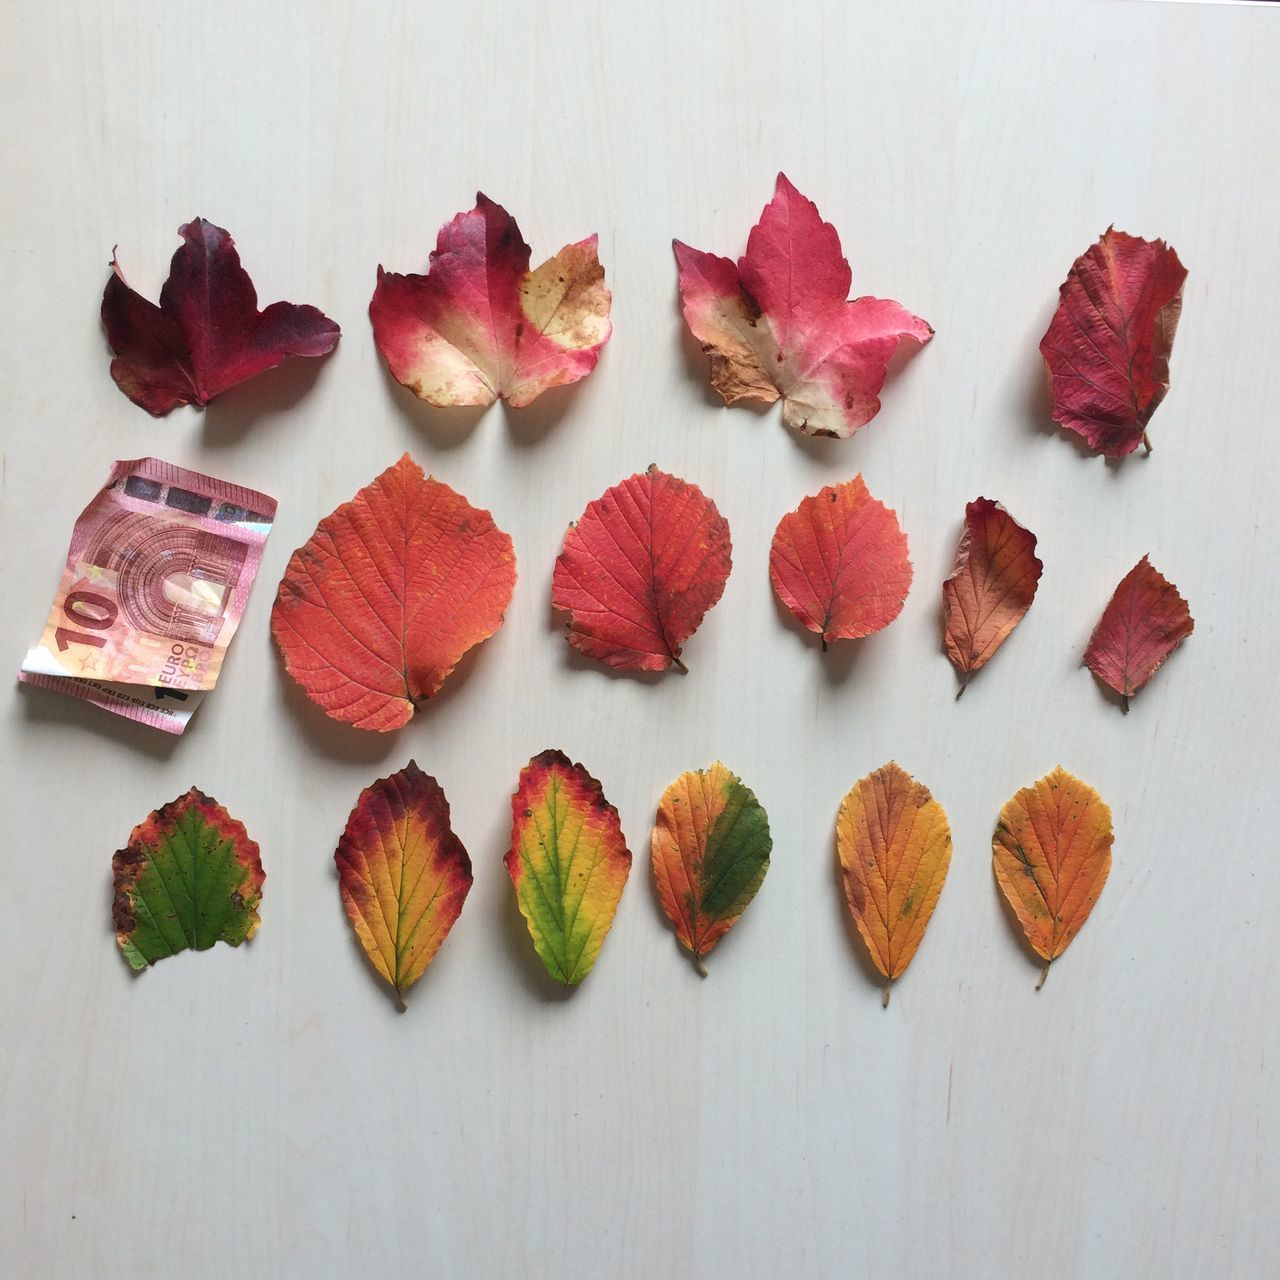 High Angle View Of Various Autumn Leaves With Paper Currency